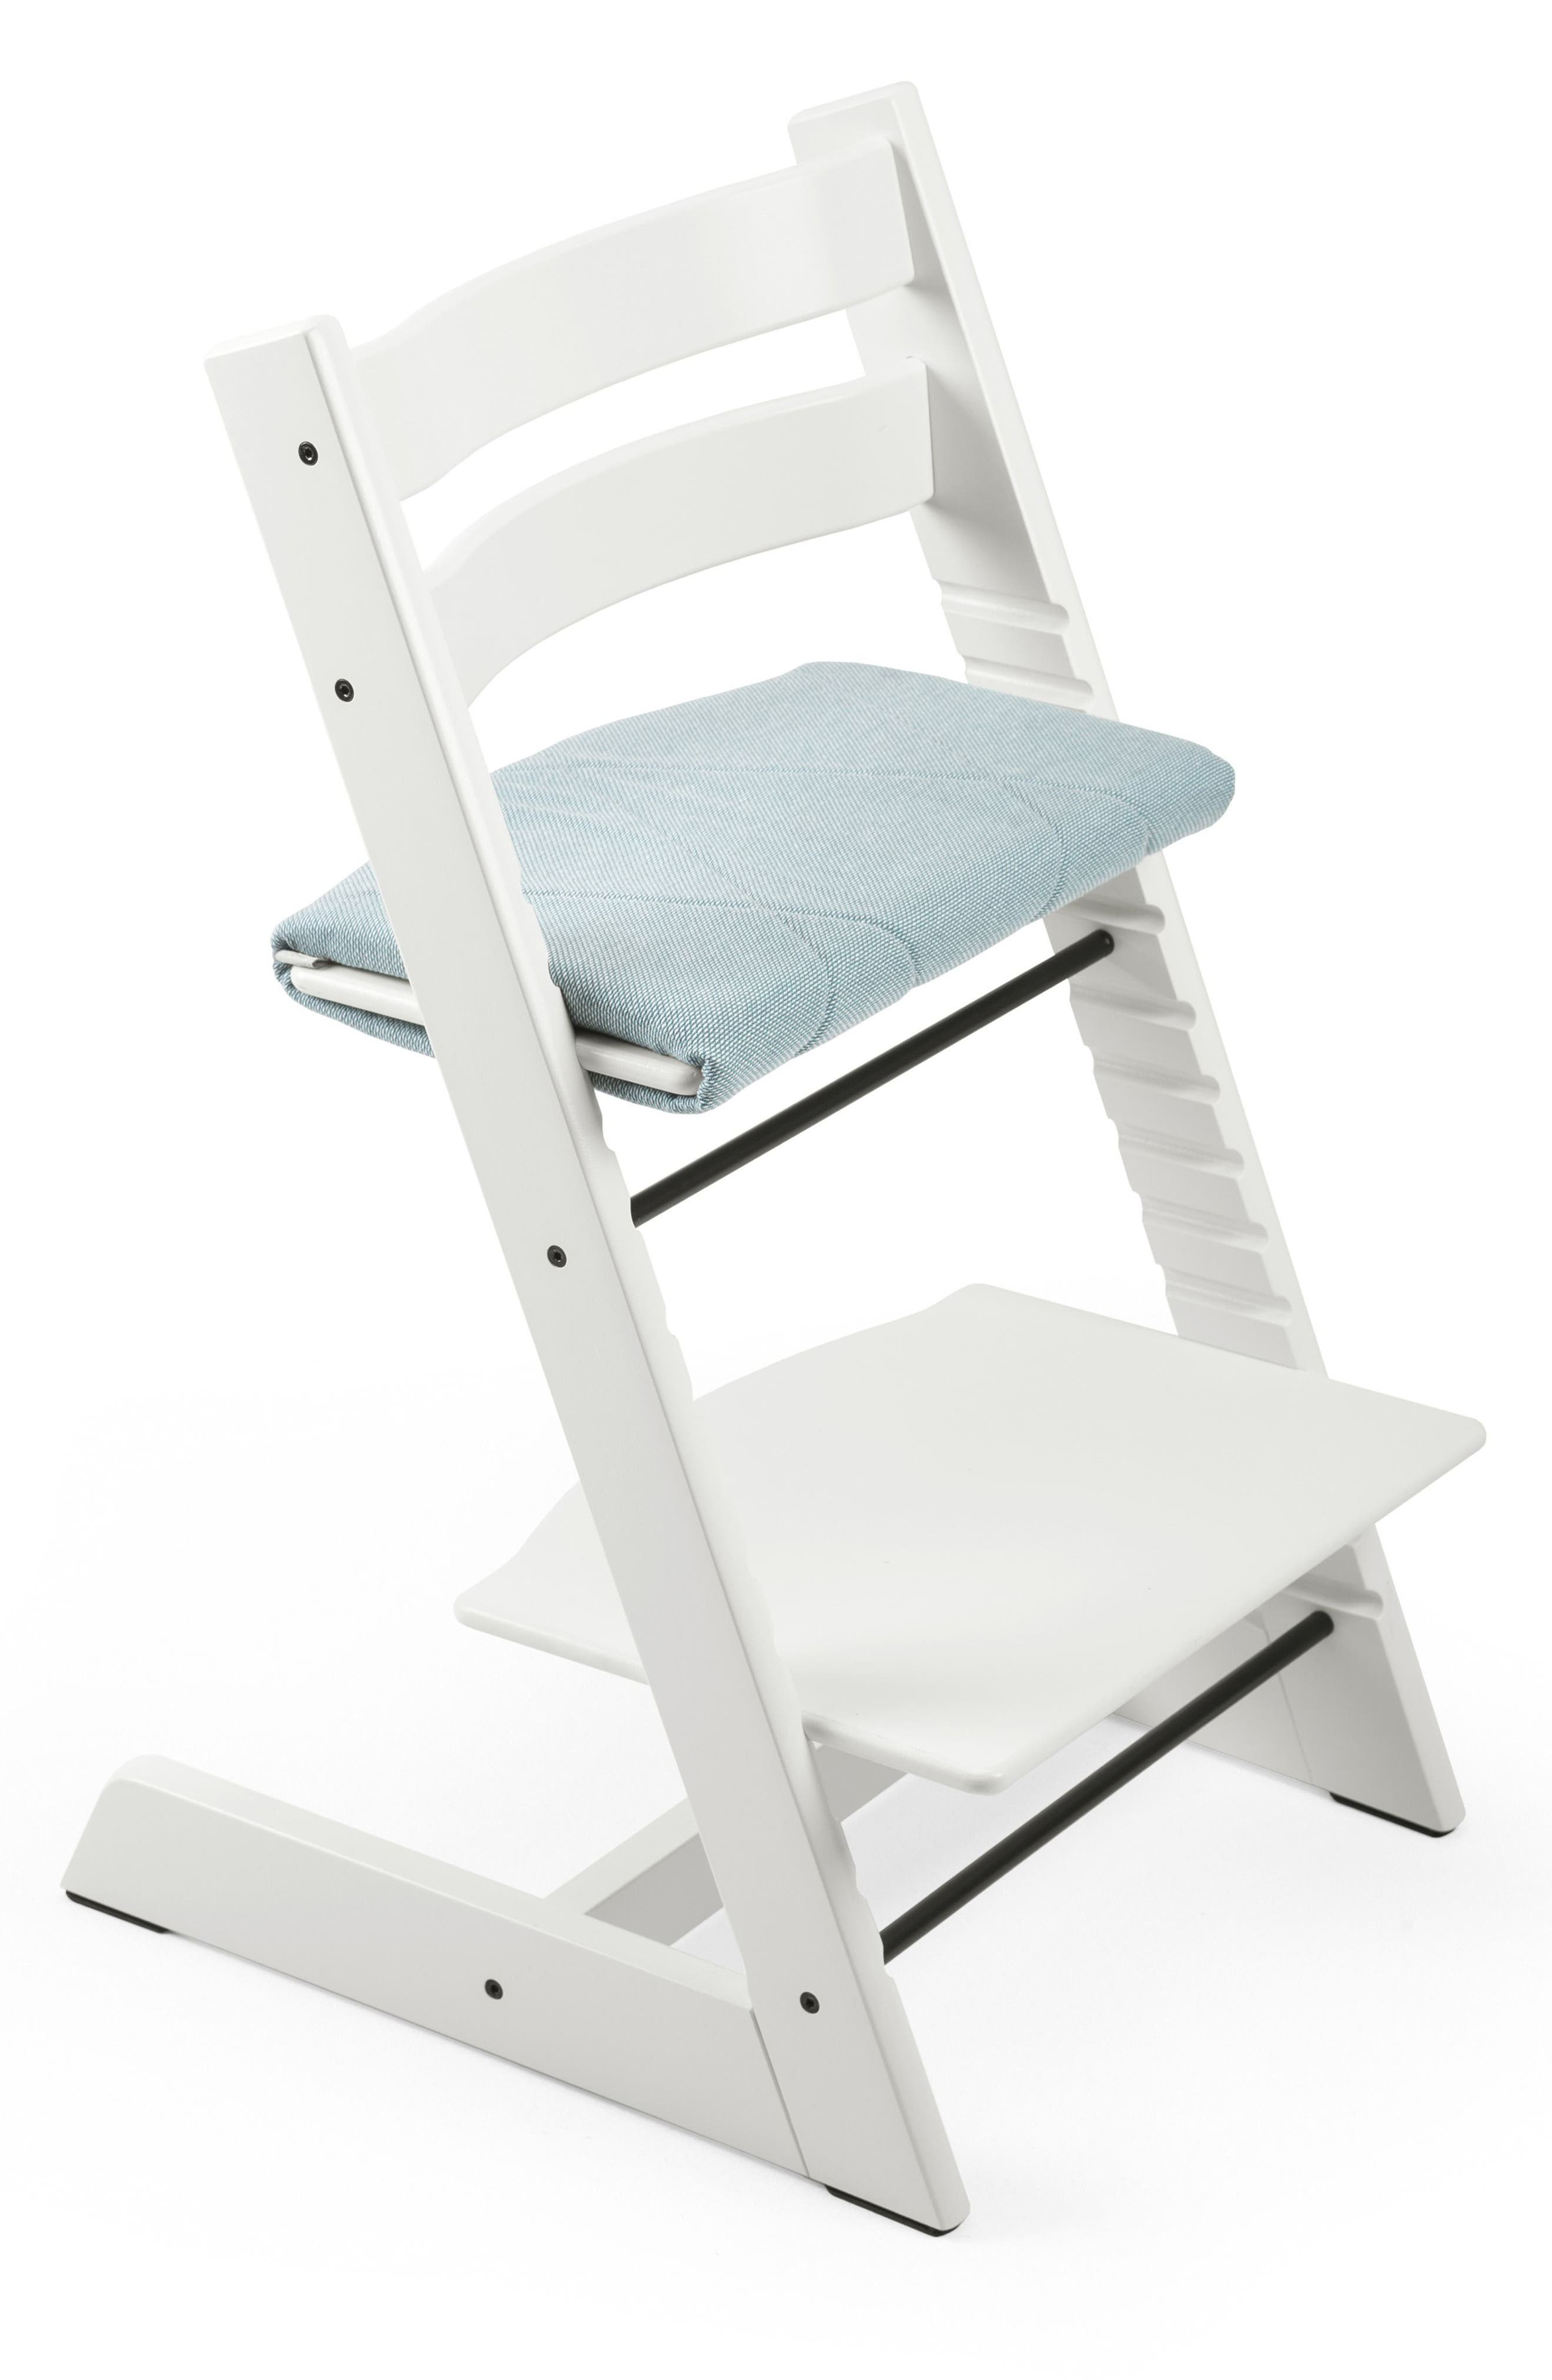 Main Image - Stokke® Seat Junior Cushion for Tripp Trapp® Chair